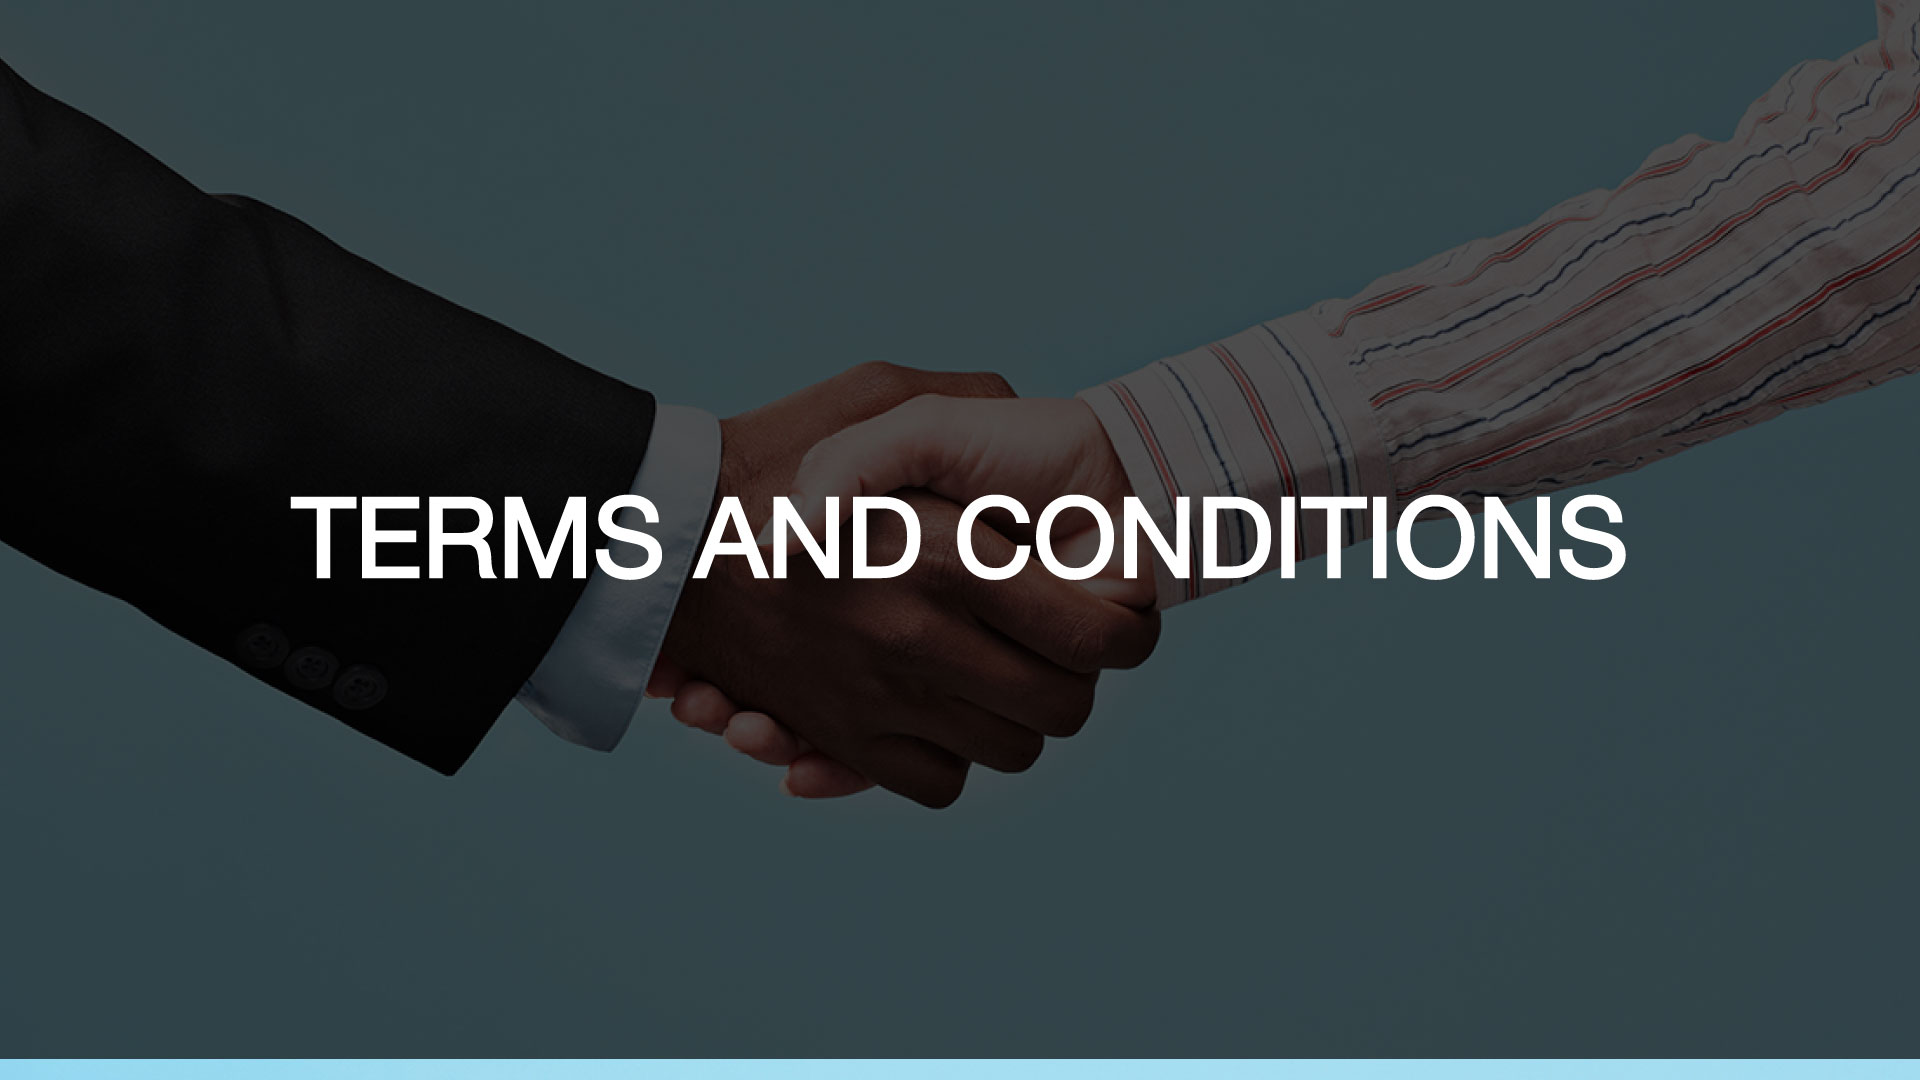 terms-and-conditions-